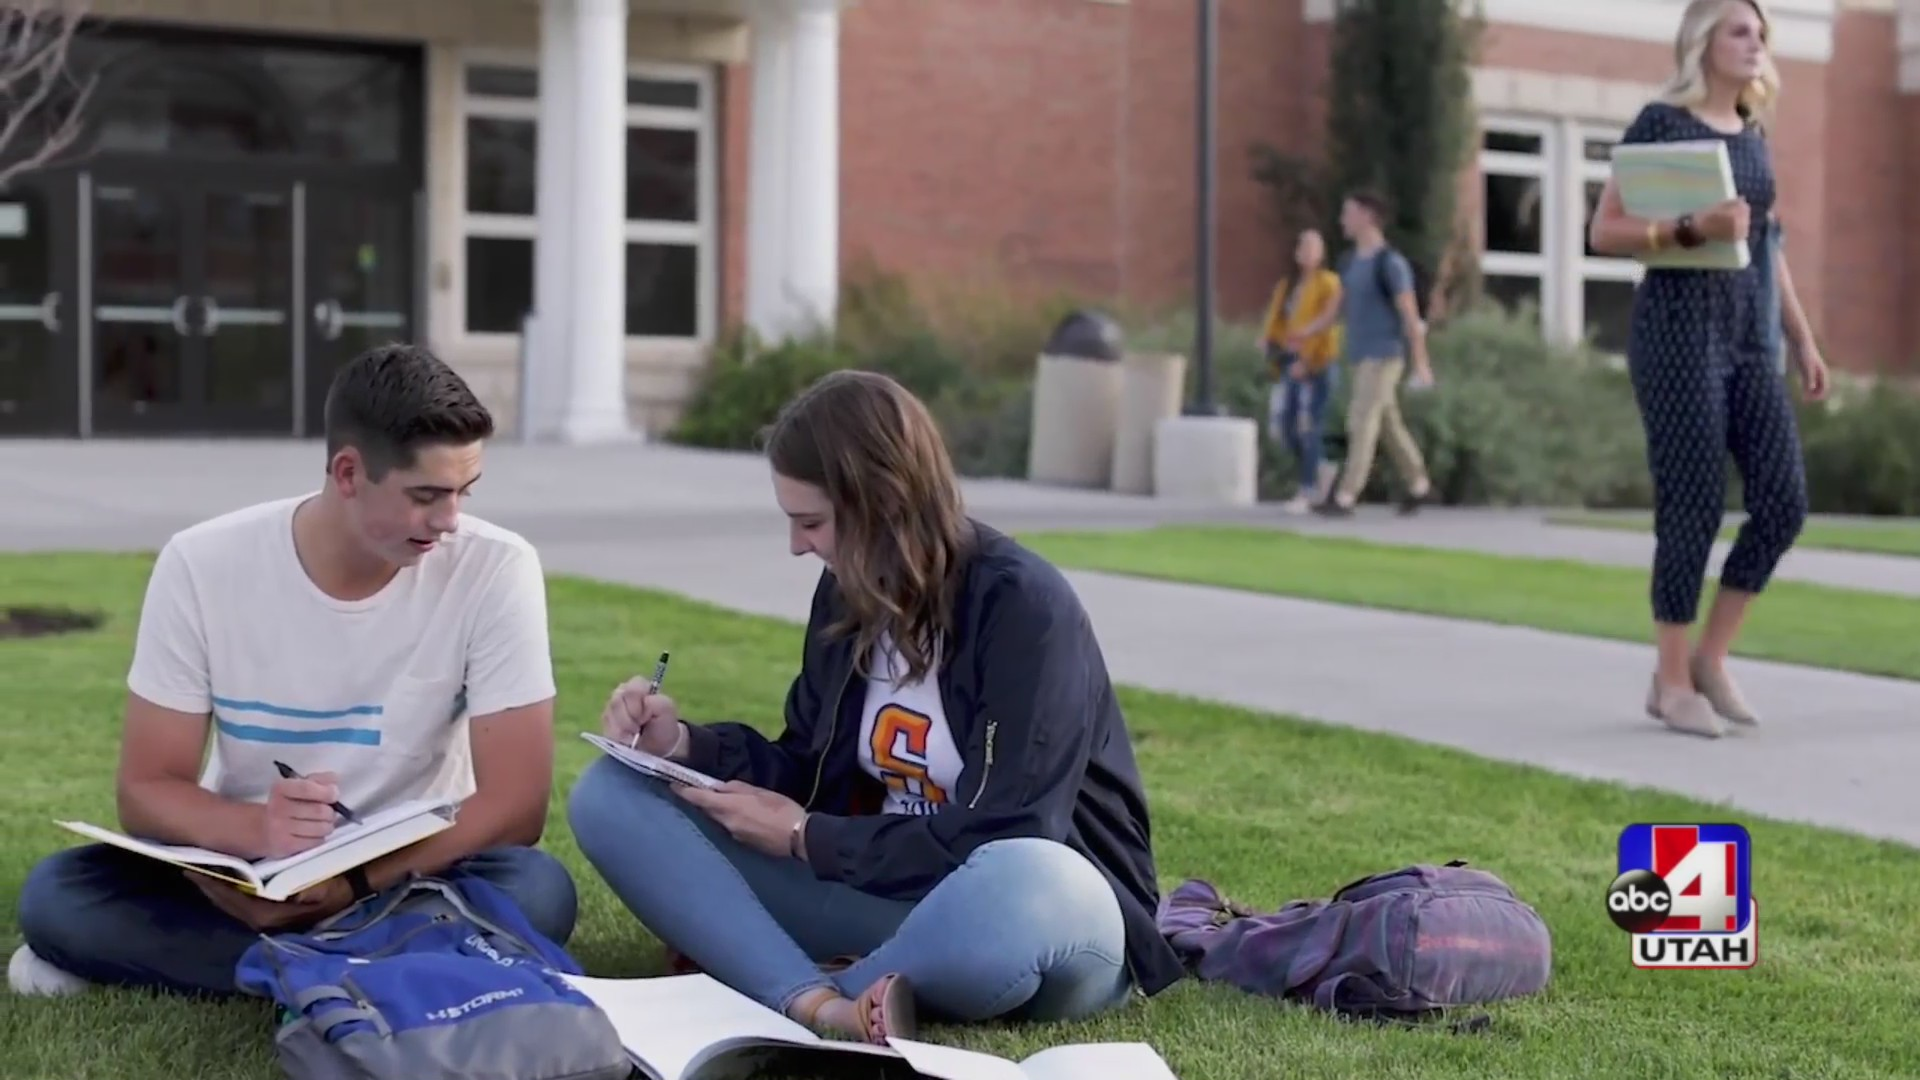 SNow college online learning